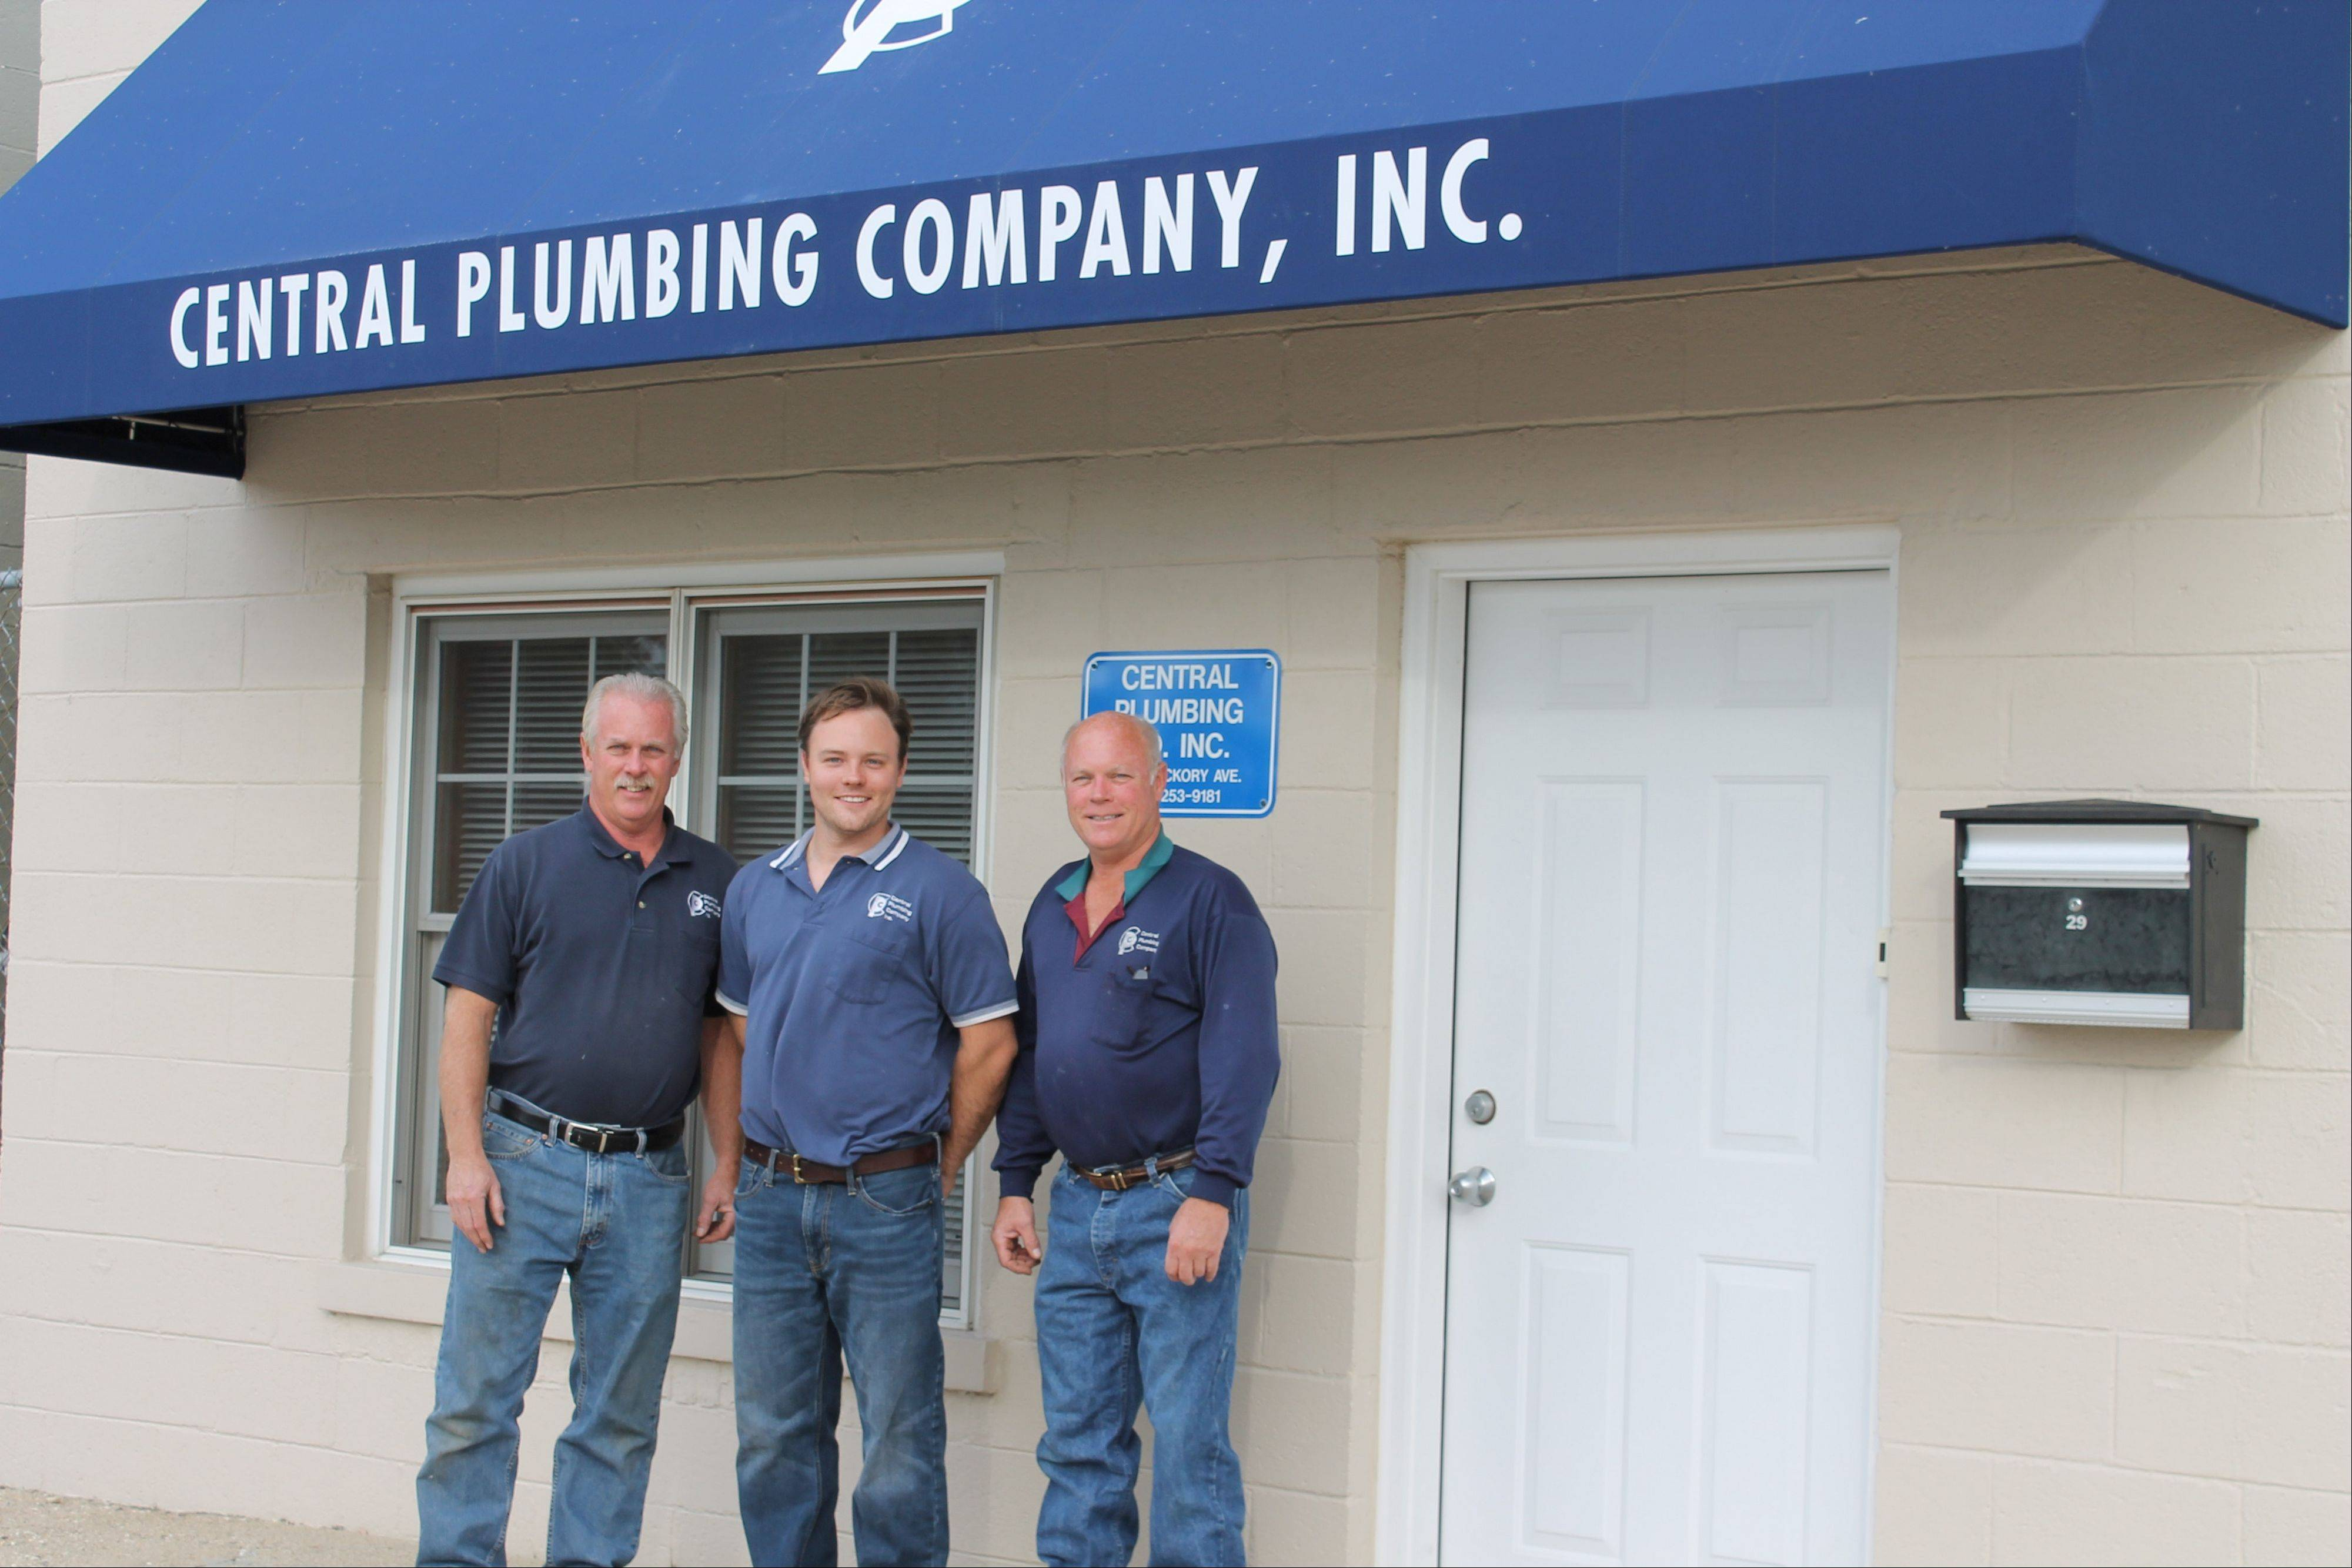 Tom, left, Rob and Kevin Ryan of Central Plumbing Company Inc. in Arlington Heights say plumbers in their family date back to the 1920s.